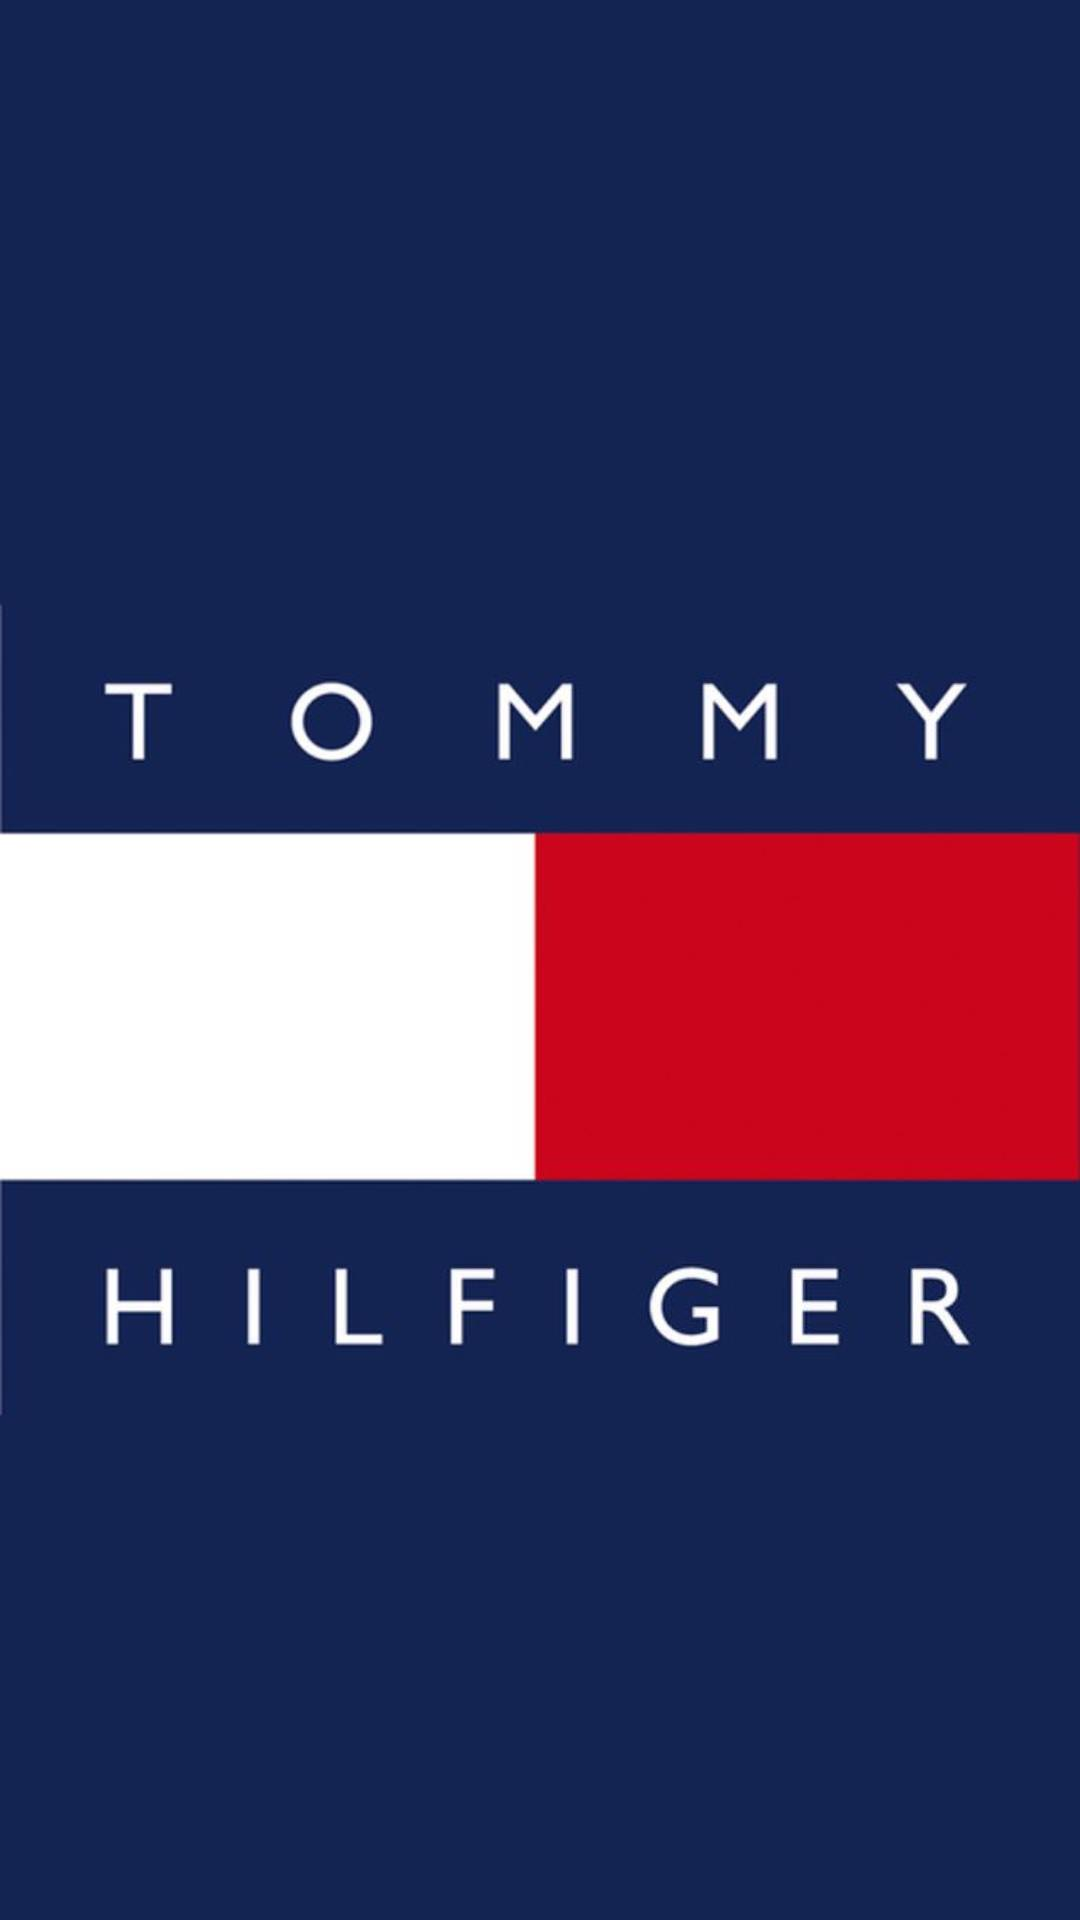 tommyhilfiger01 - TOMMY HILFIGER/トミー・ヒルフィガーの高画質スマホ壁紙20枚 [iPhone&Androidに対応]